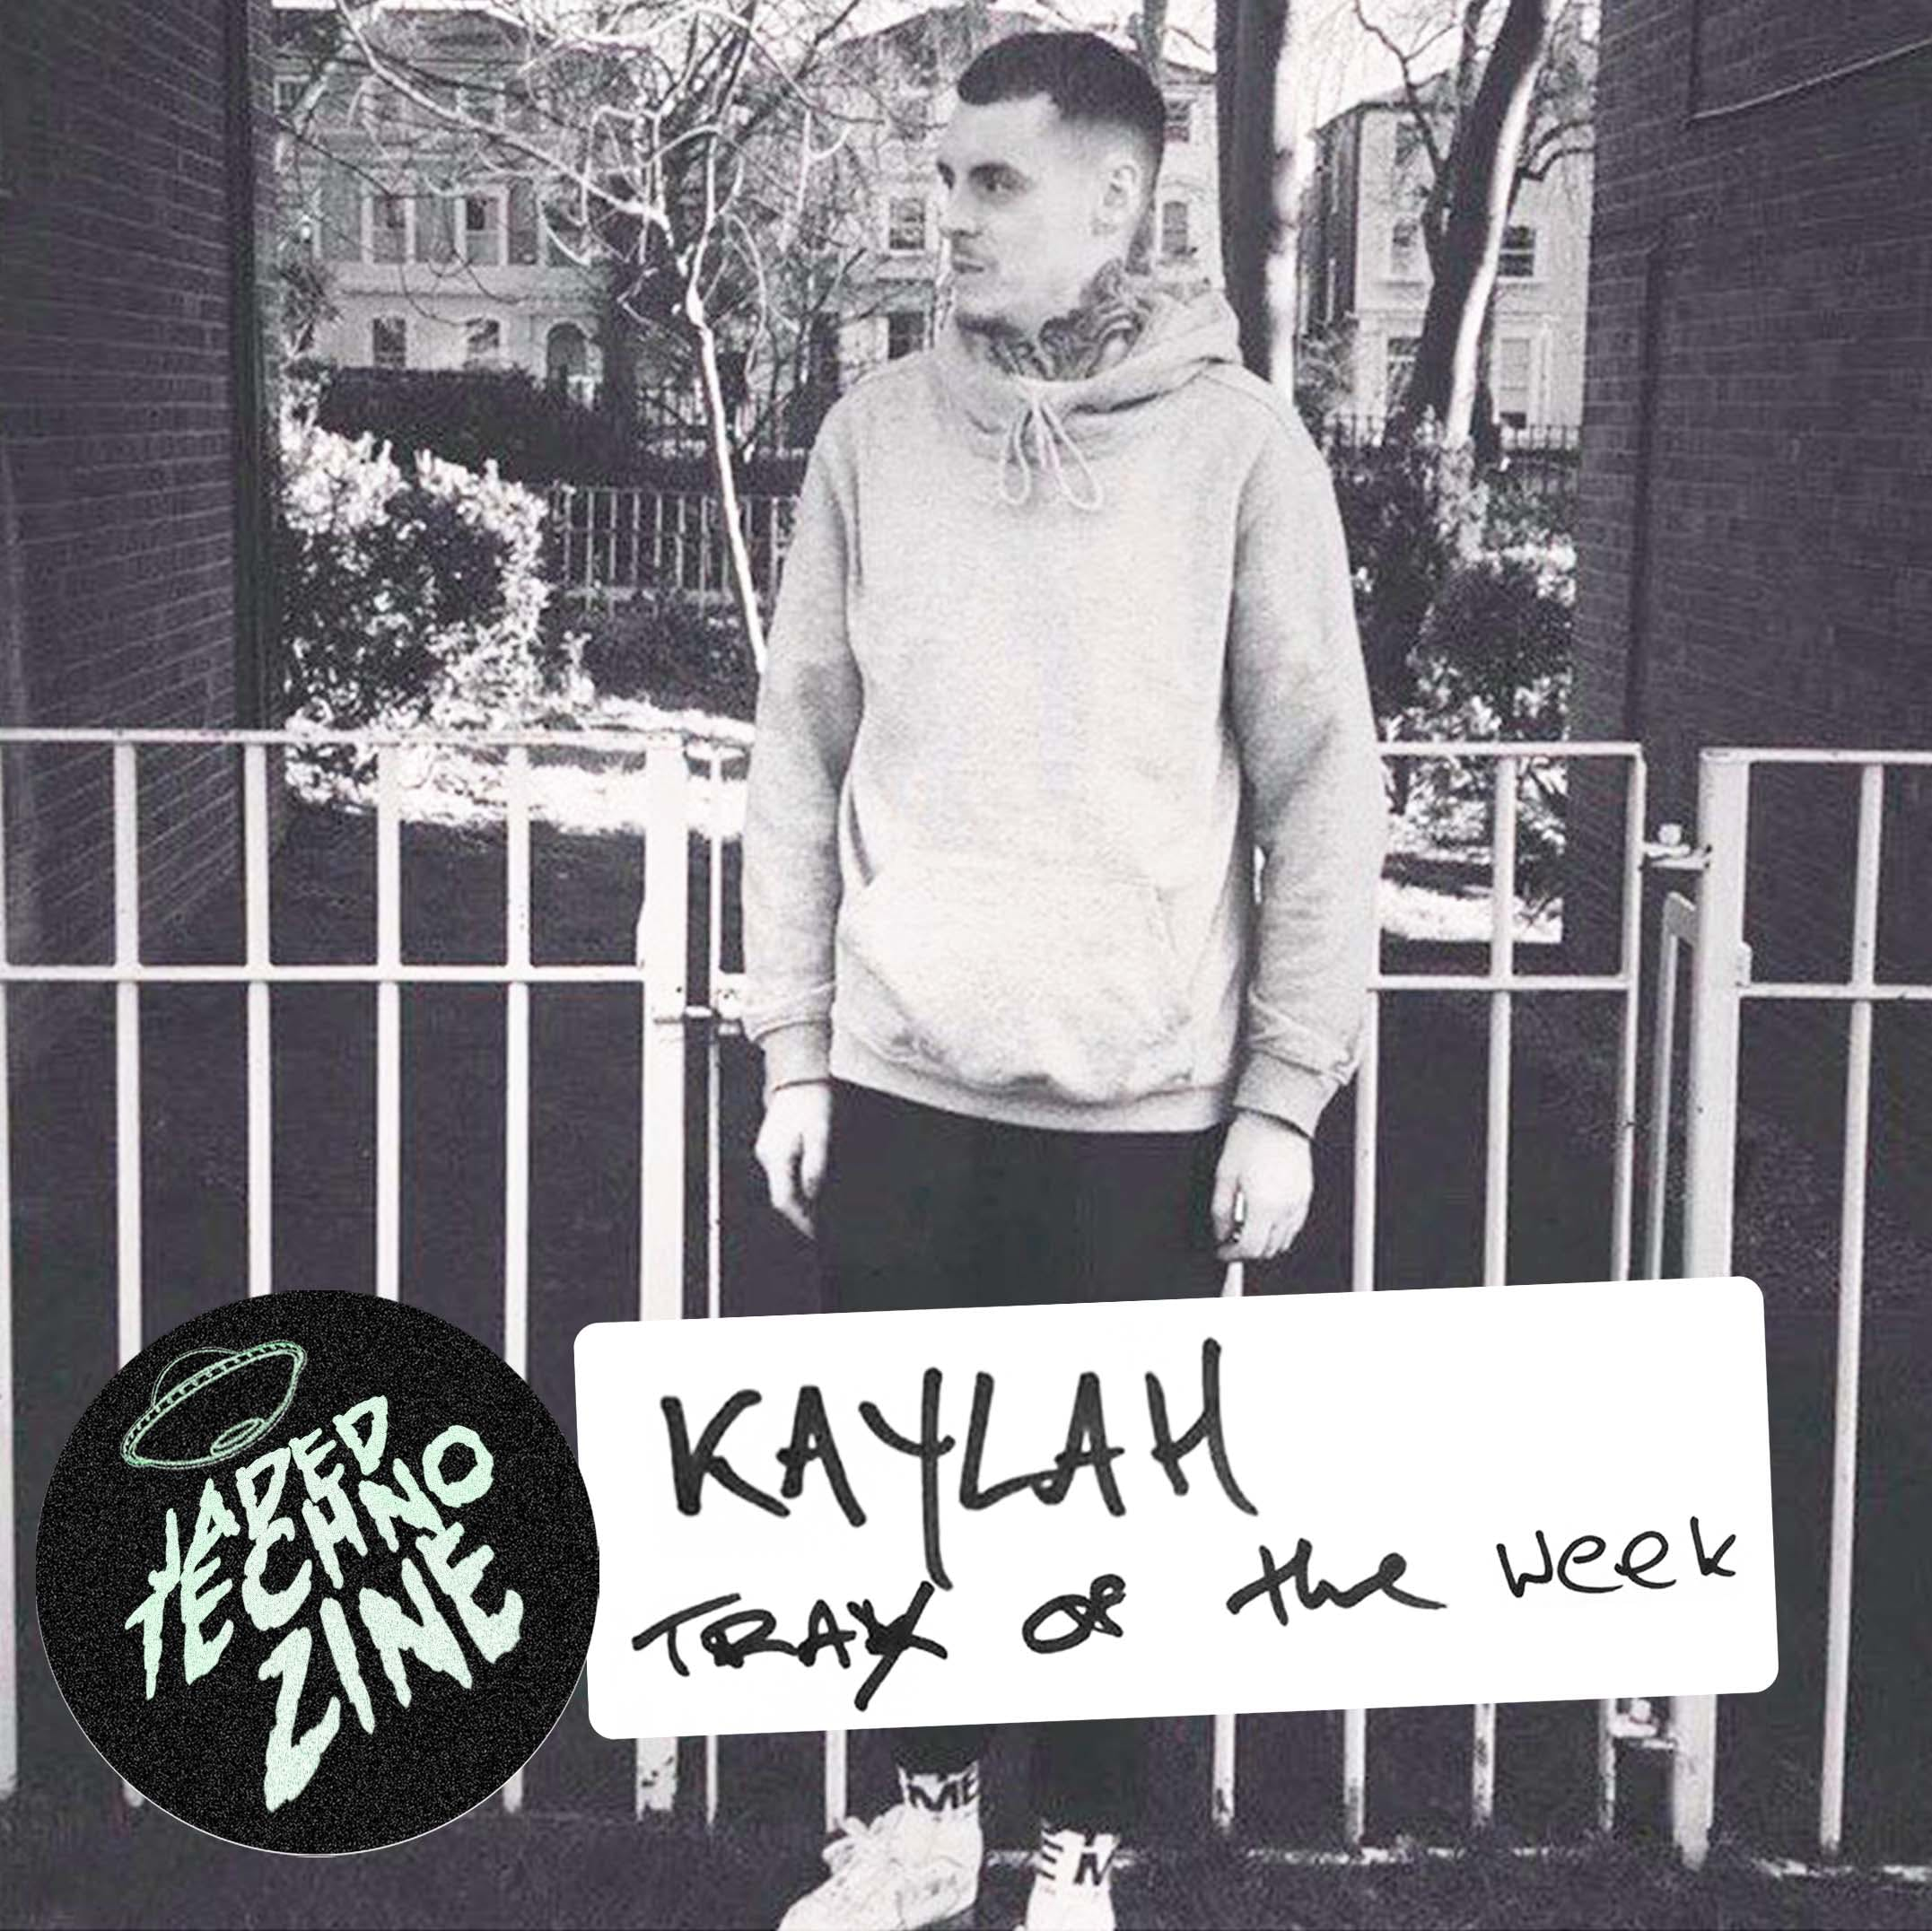 Kaylah: Trax Of The Week